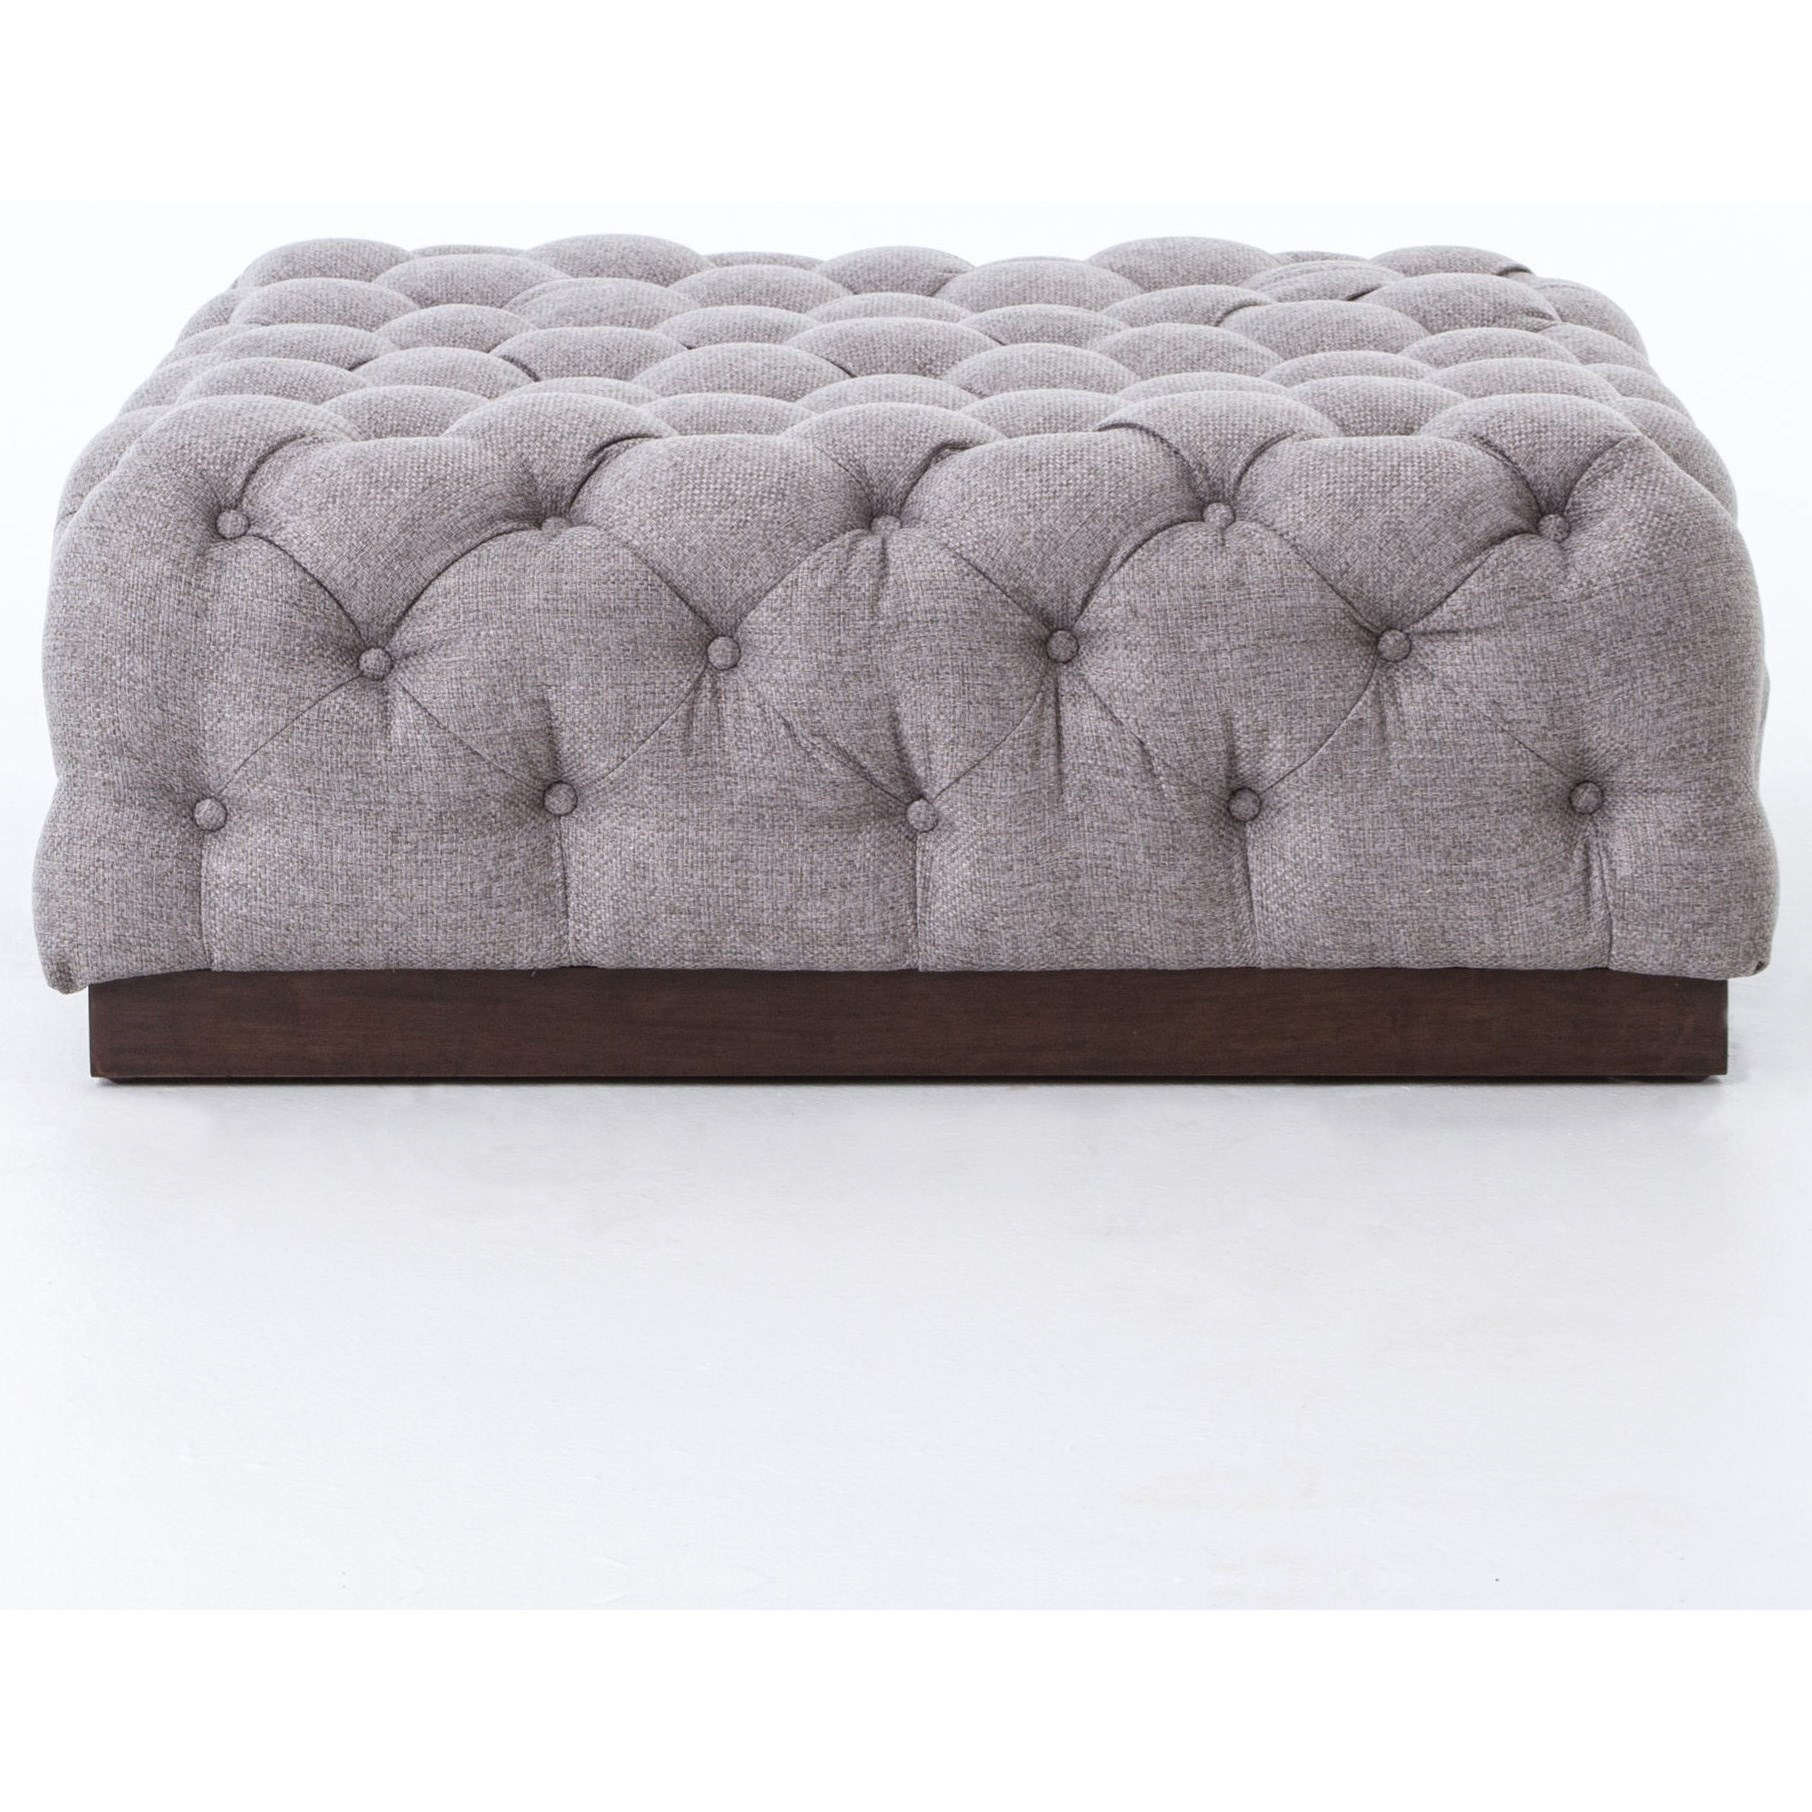 Four Hands Kensington Tufted Plateau Cocktail Ottoman | Belfort Furniture |  Ottoman